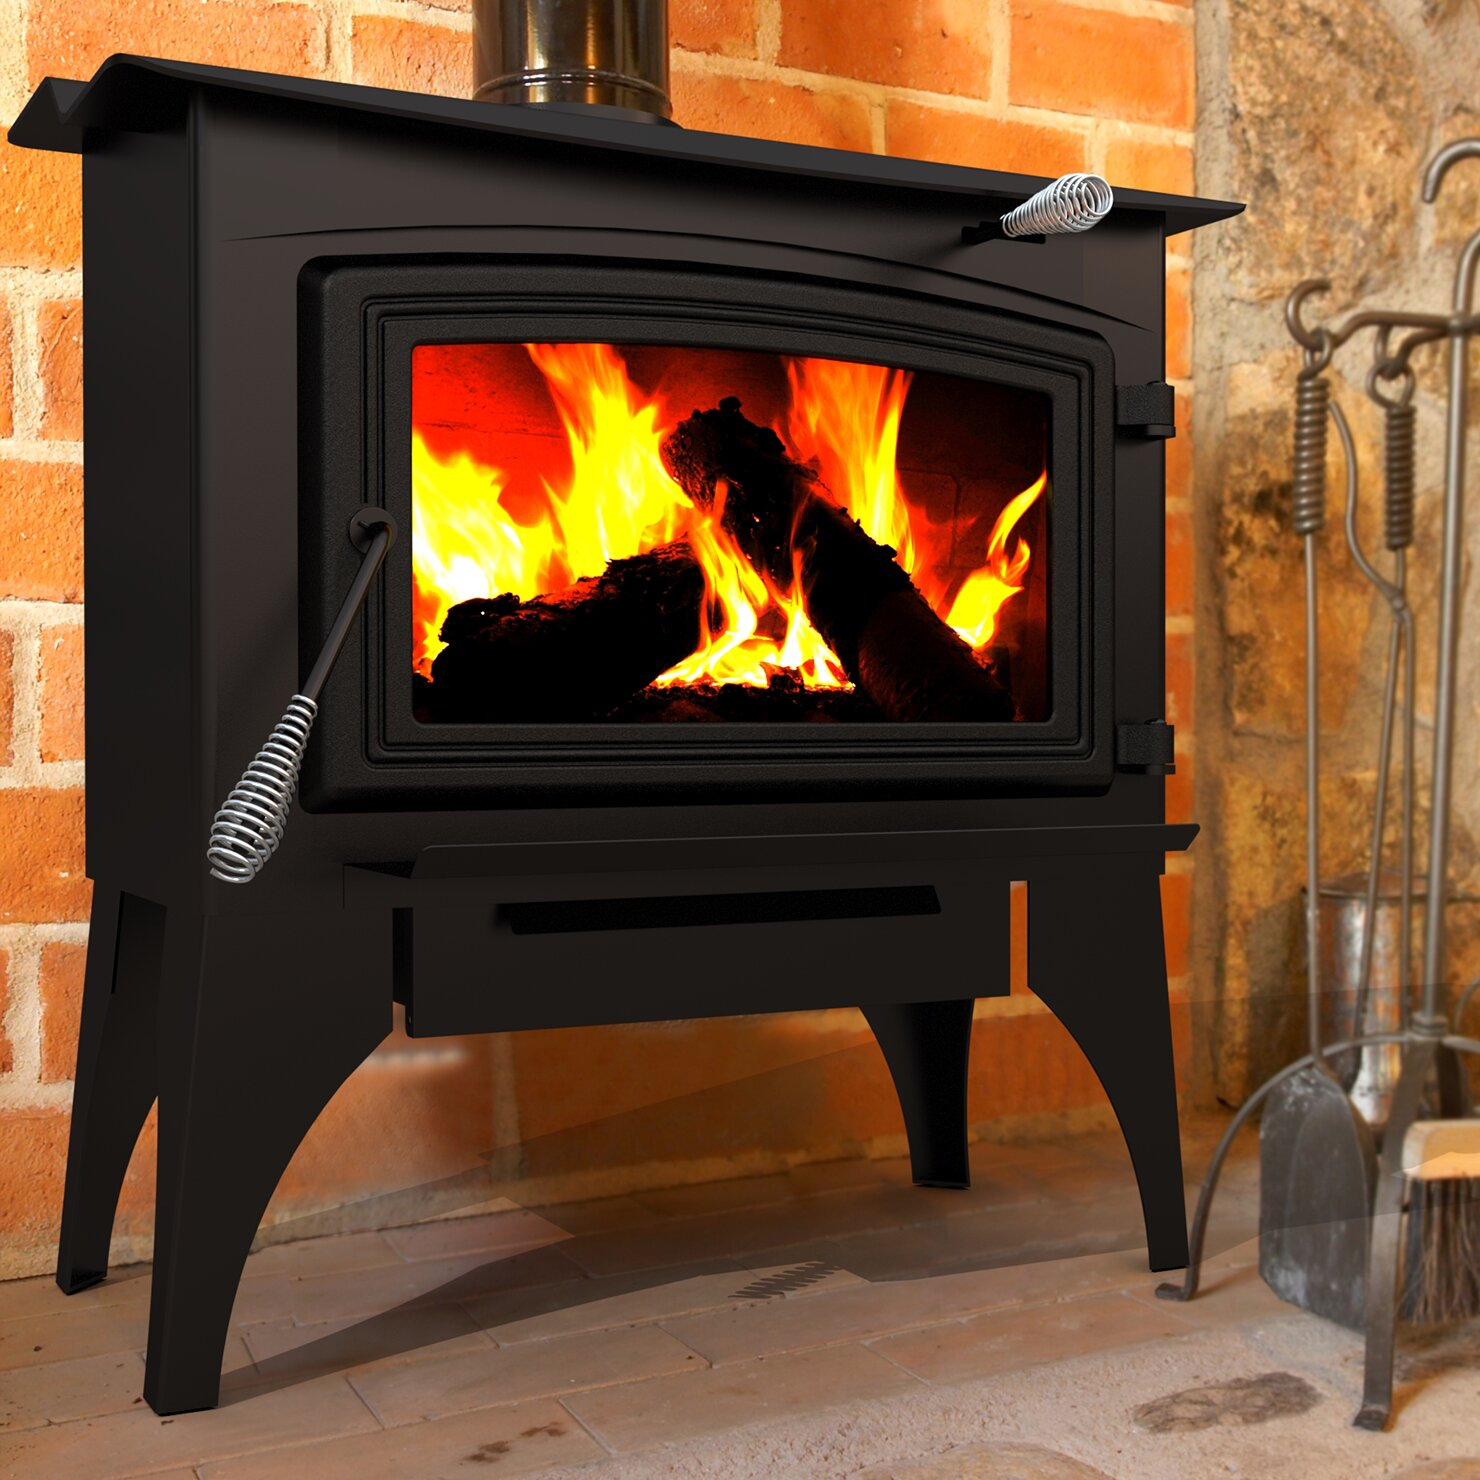 Direct Vent Wood Stove - Dyna-Glo Pleasant Hearth 1,800 Sq. Ft. Direct Vent Wood Stove